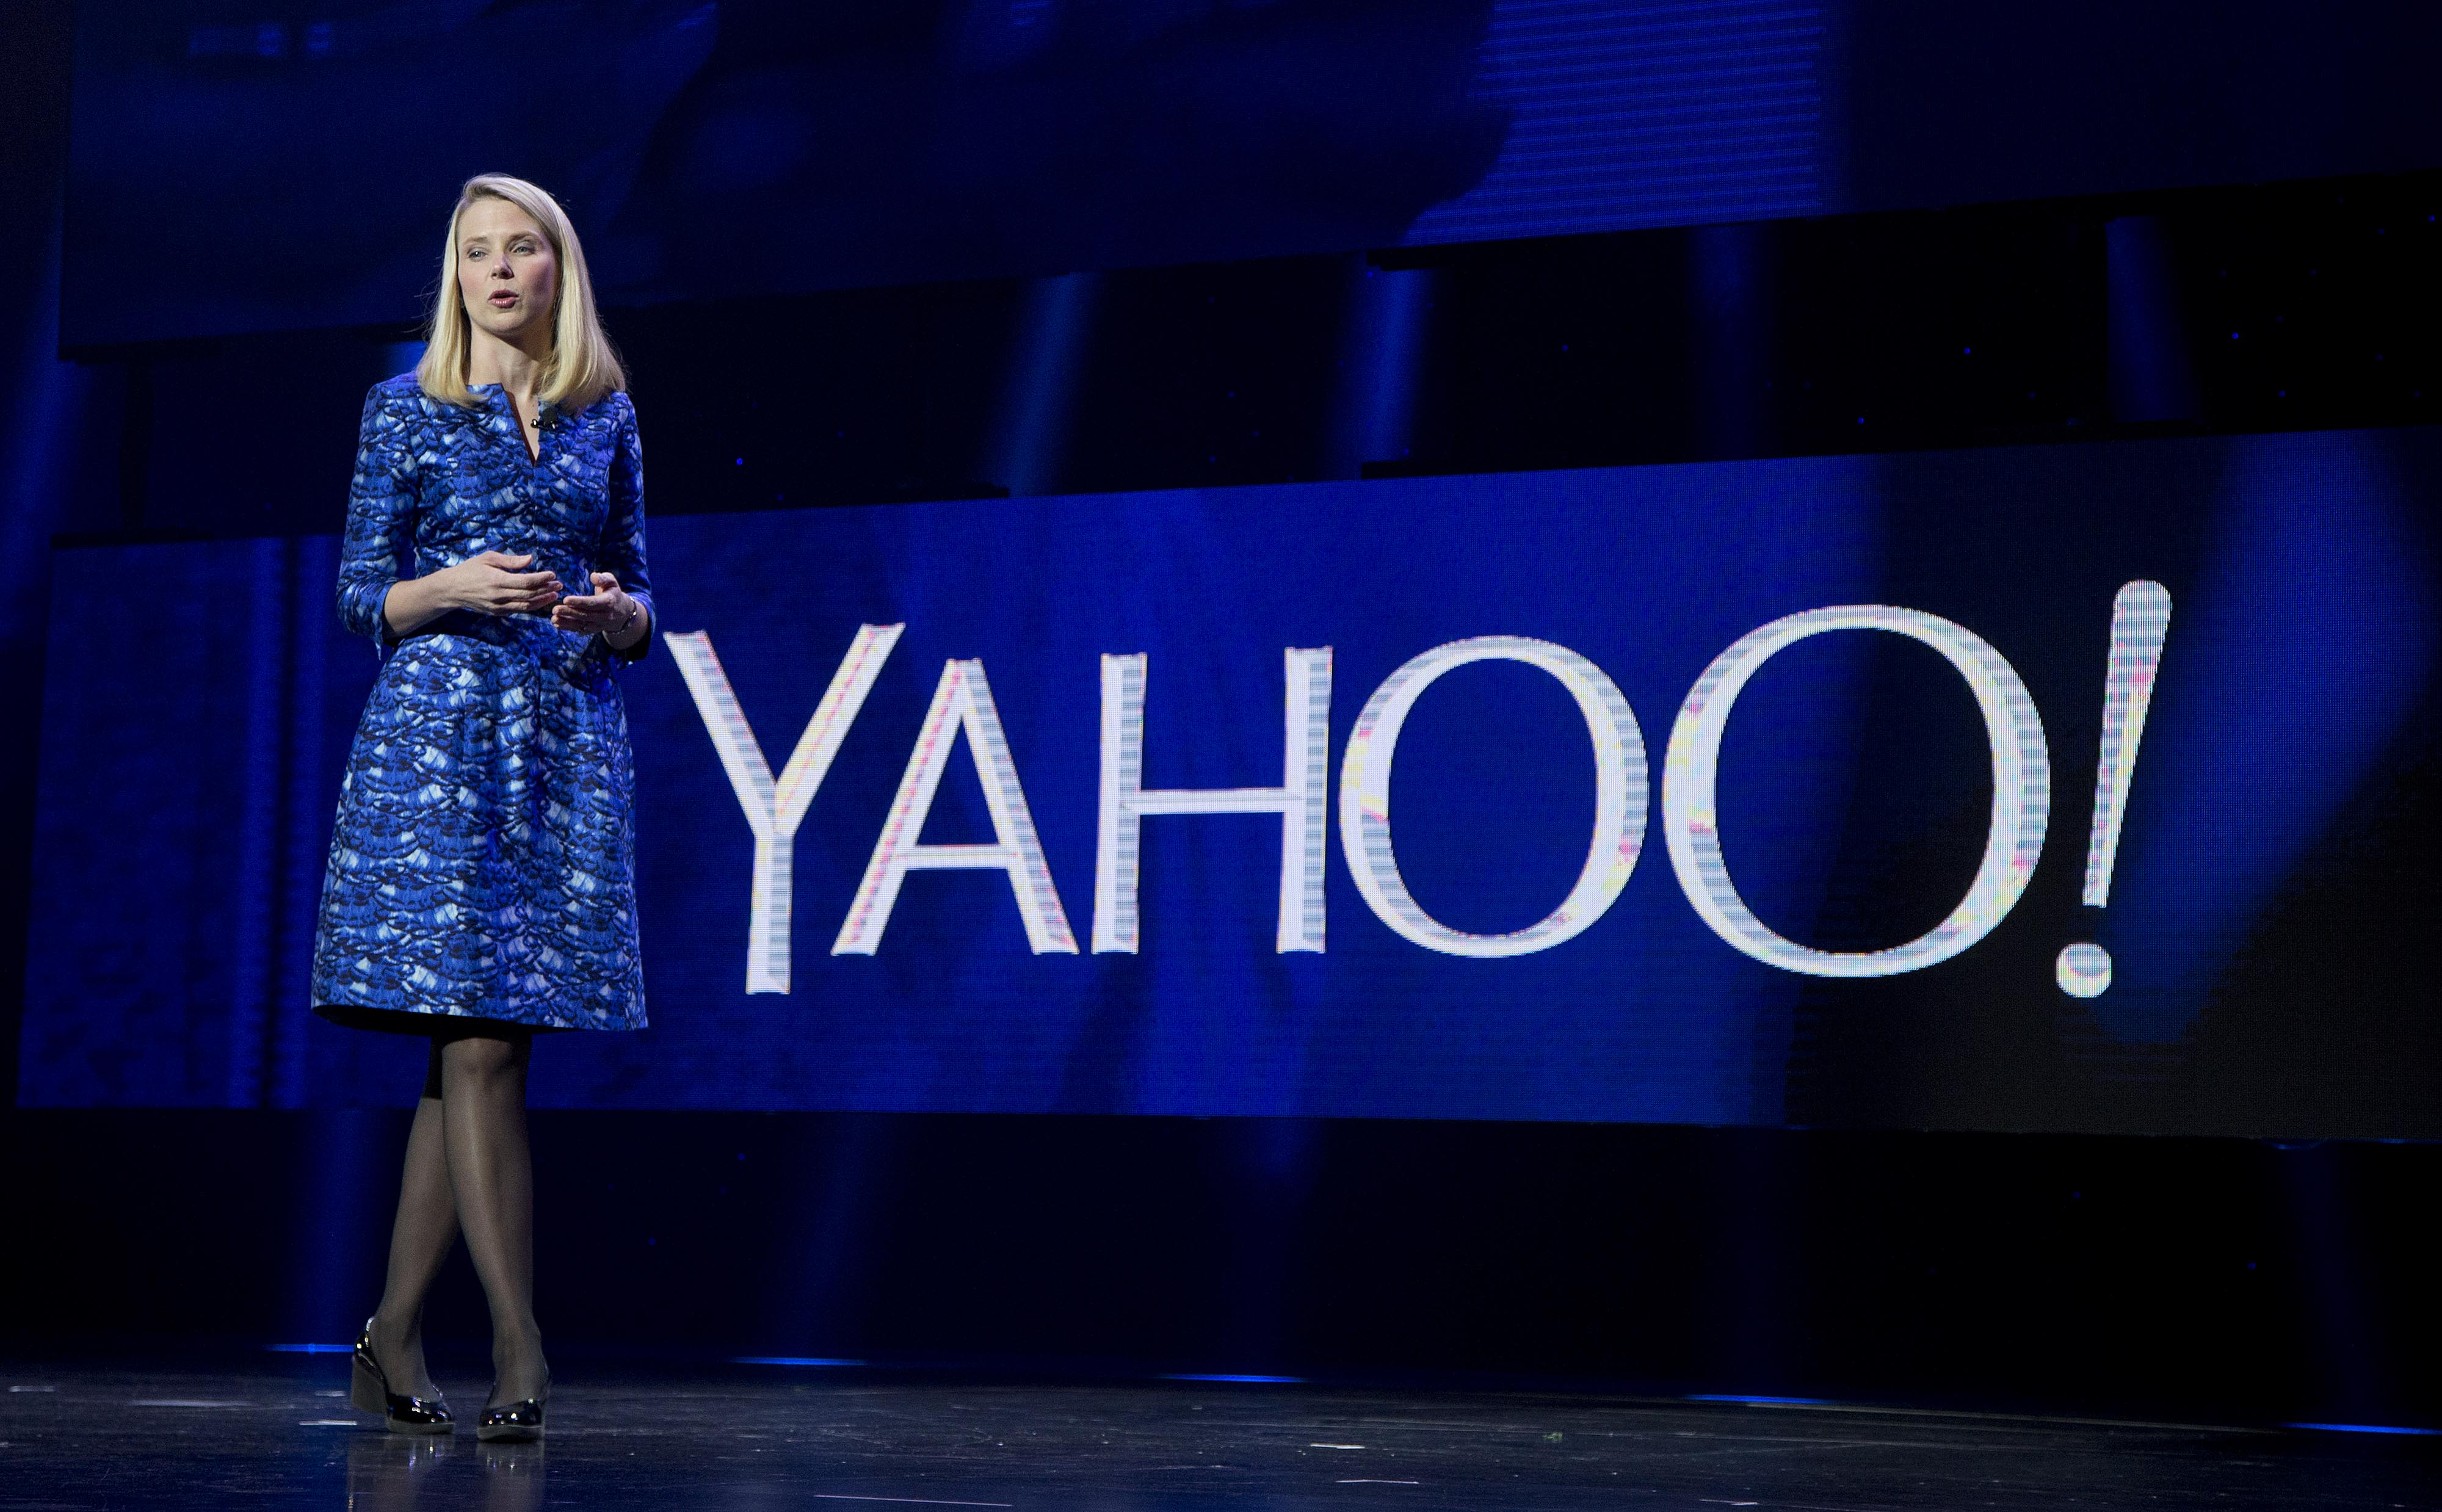 Yahoo president and CEO Marissa Mayer speaks during a keynote address at the International Consumer Electronics Show in Las Vegas on Jan. 7, 2014.